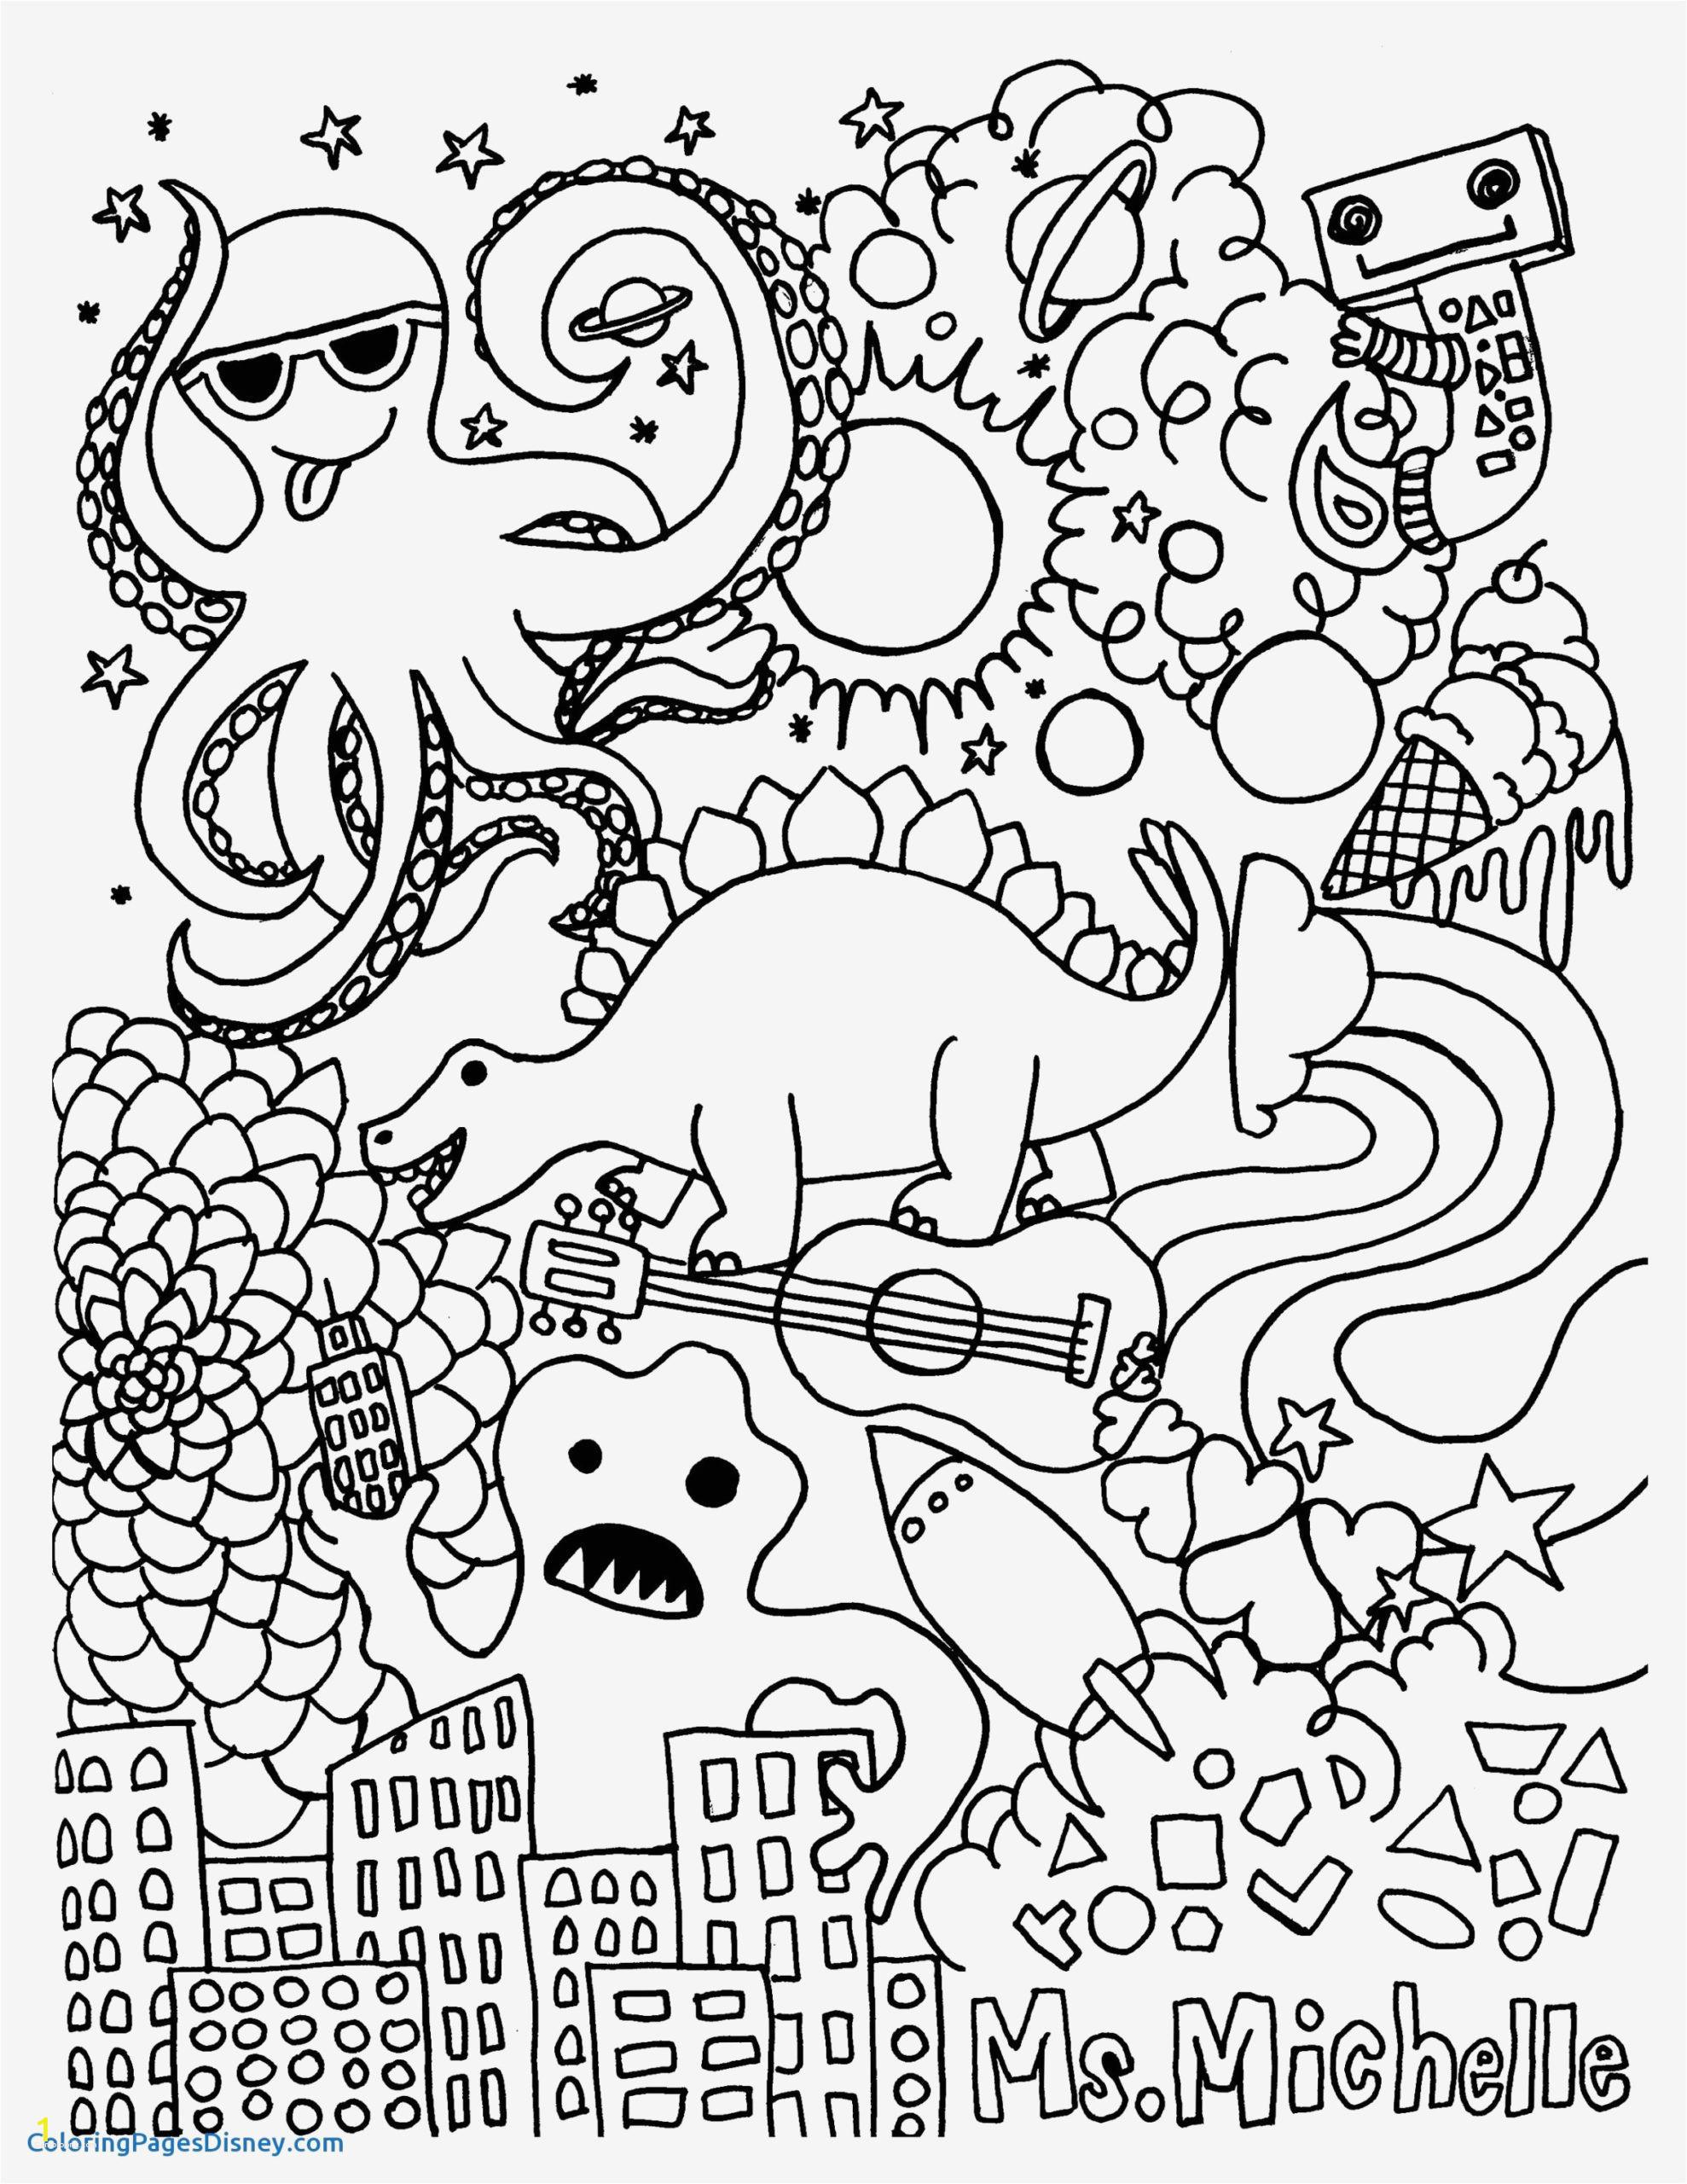 printable coloring pages for toddlers beautiful coloring book coloring book most exemplary starbucks pages of printable coloring pages for toddlers